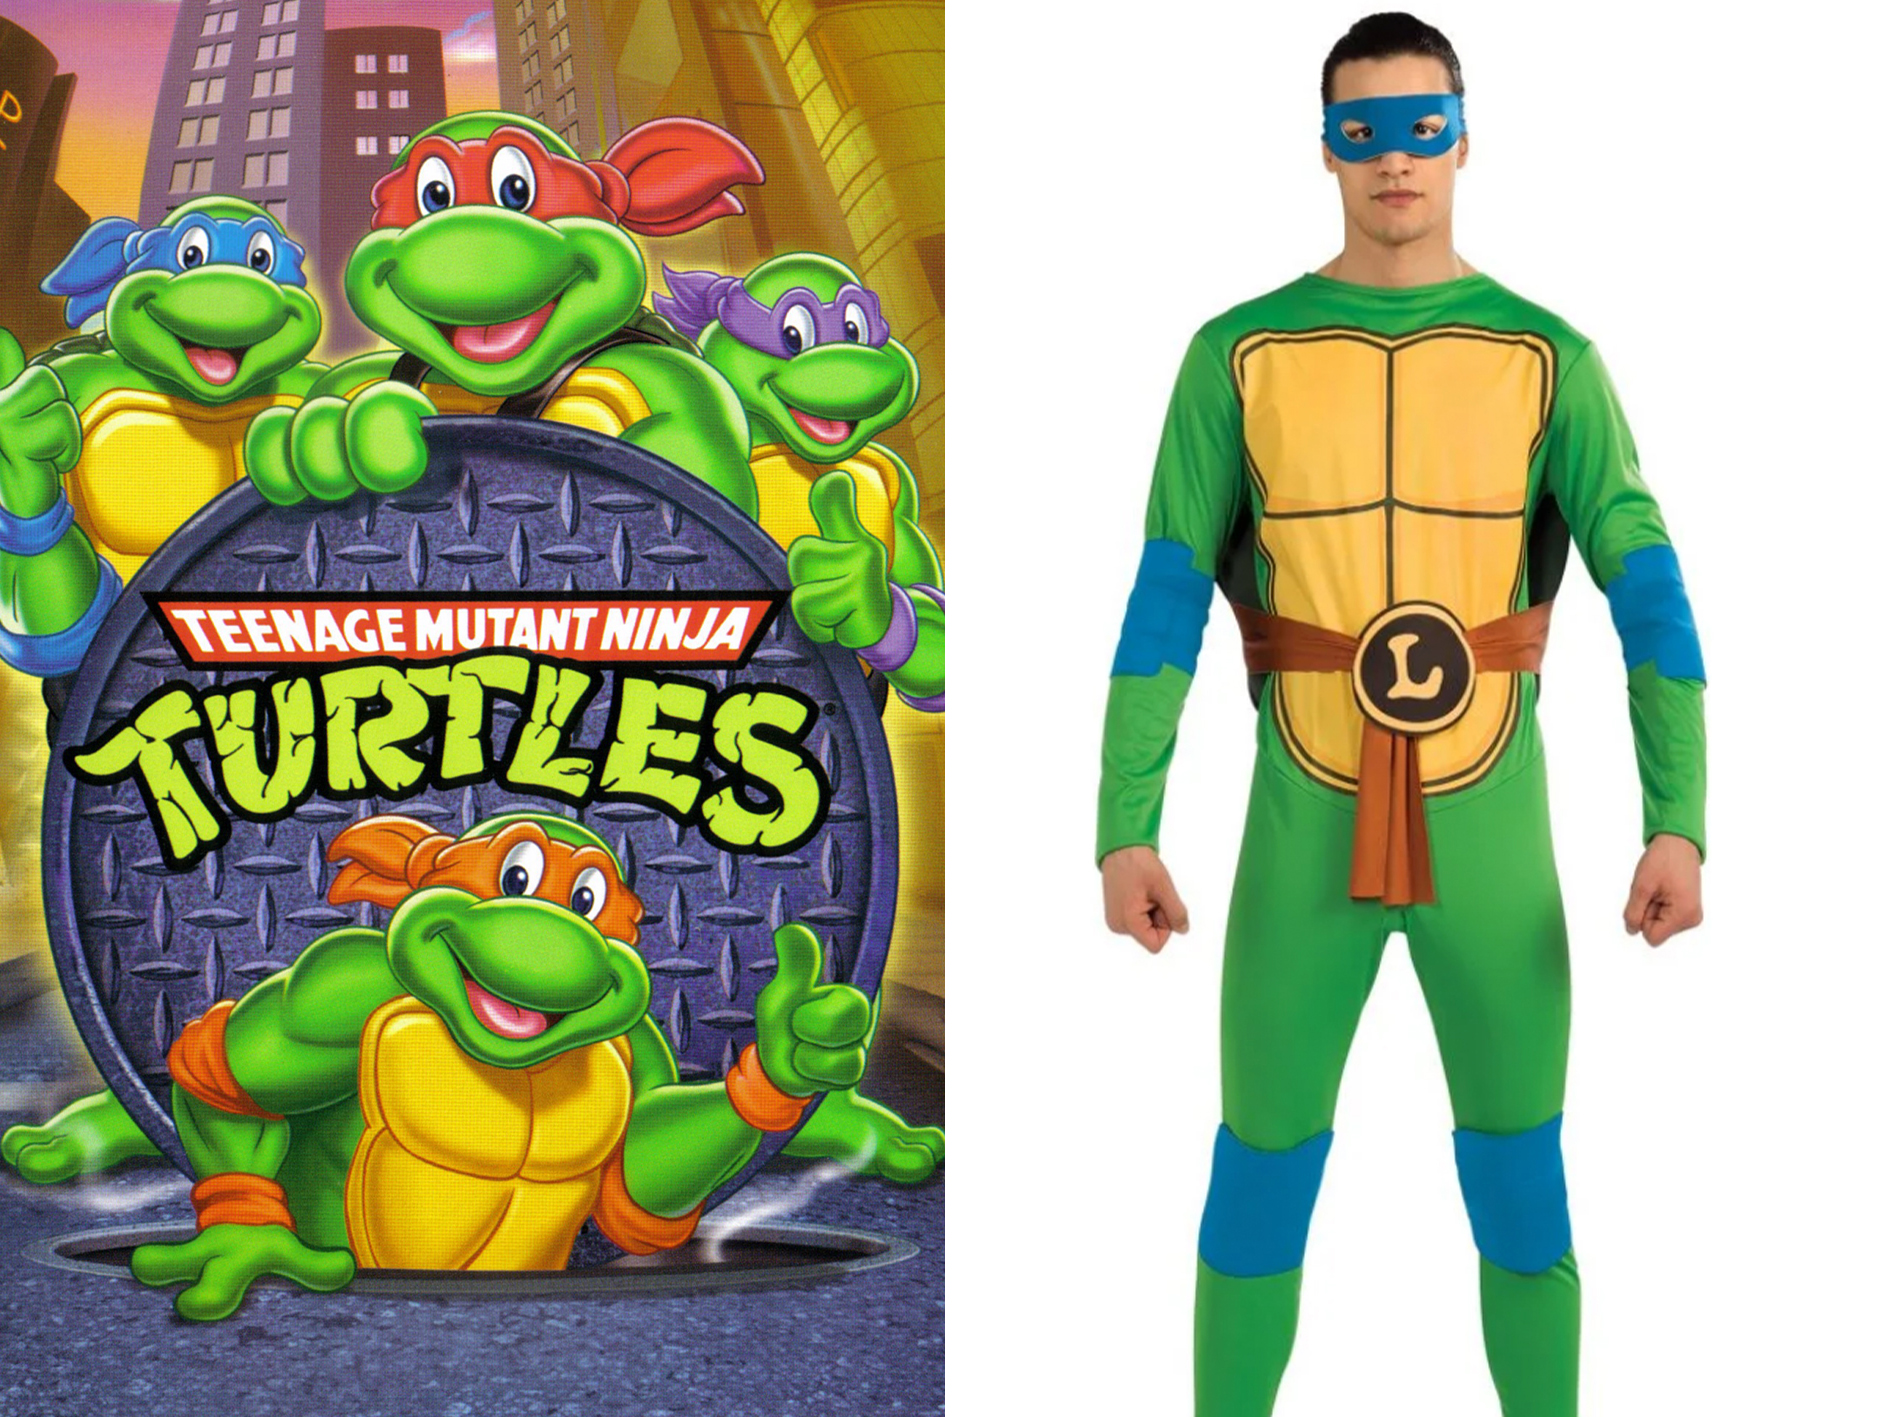 Turtles 1 15 Halloween Costumes Inspired By The 80s - Who Will You Go As?